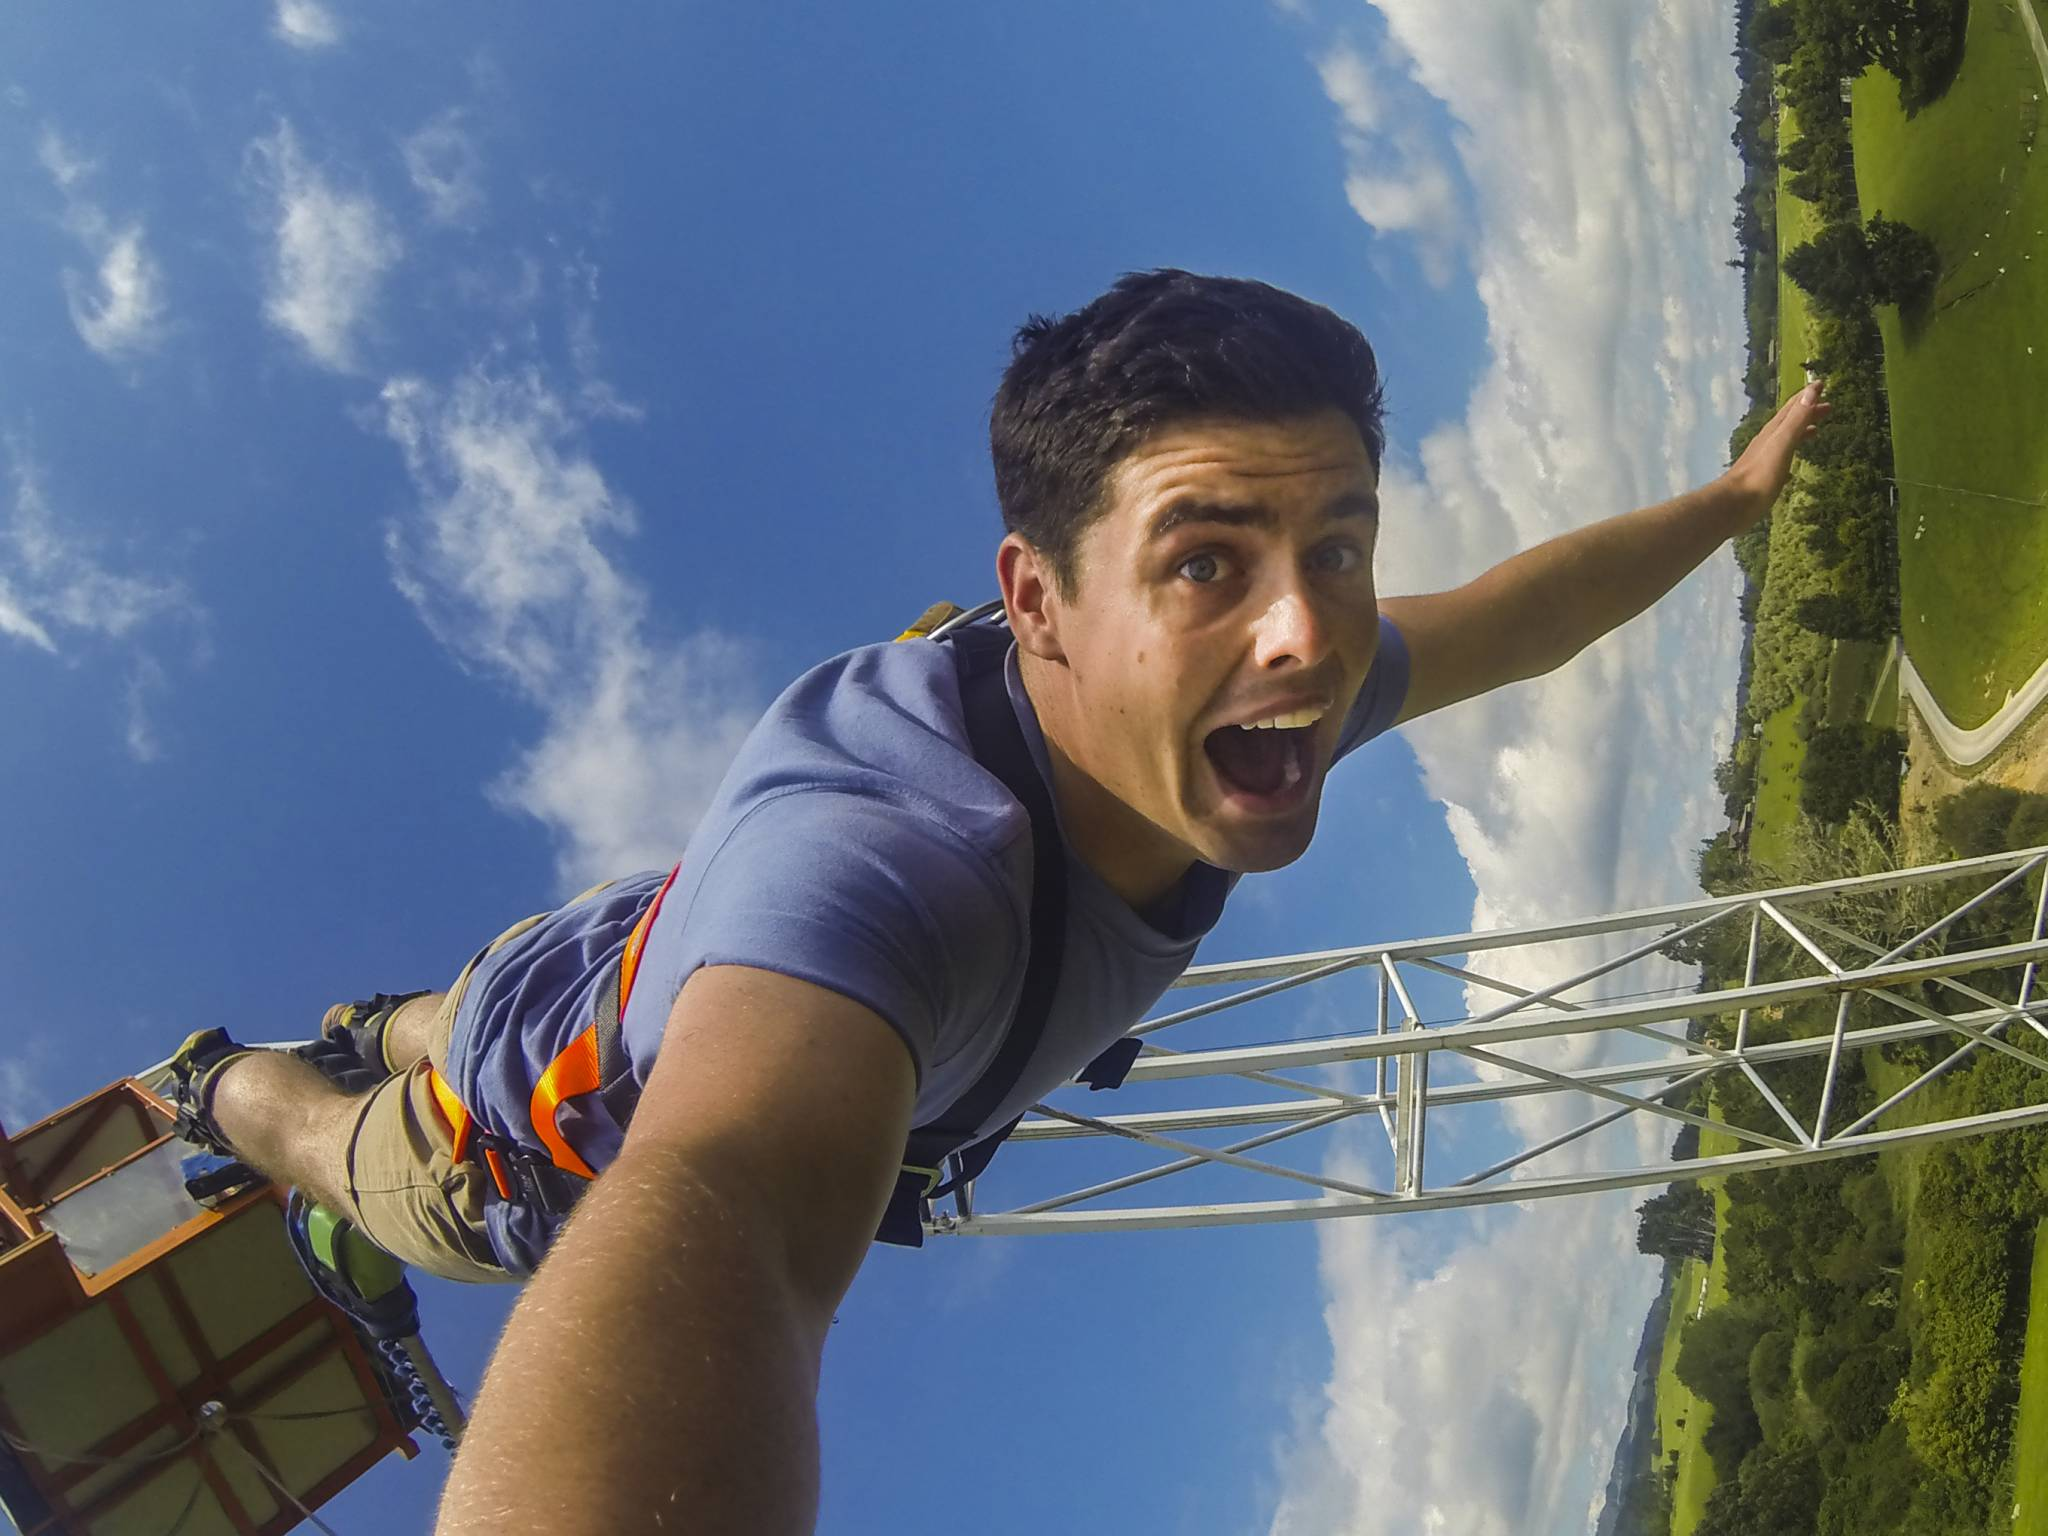 Velocity Valley Adventure Park's Bungy Jump